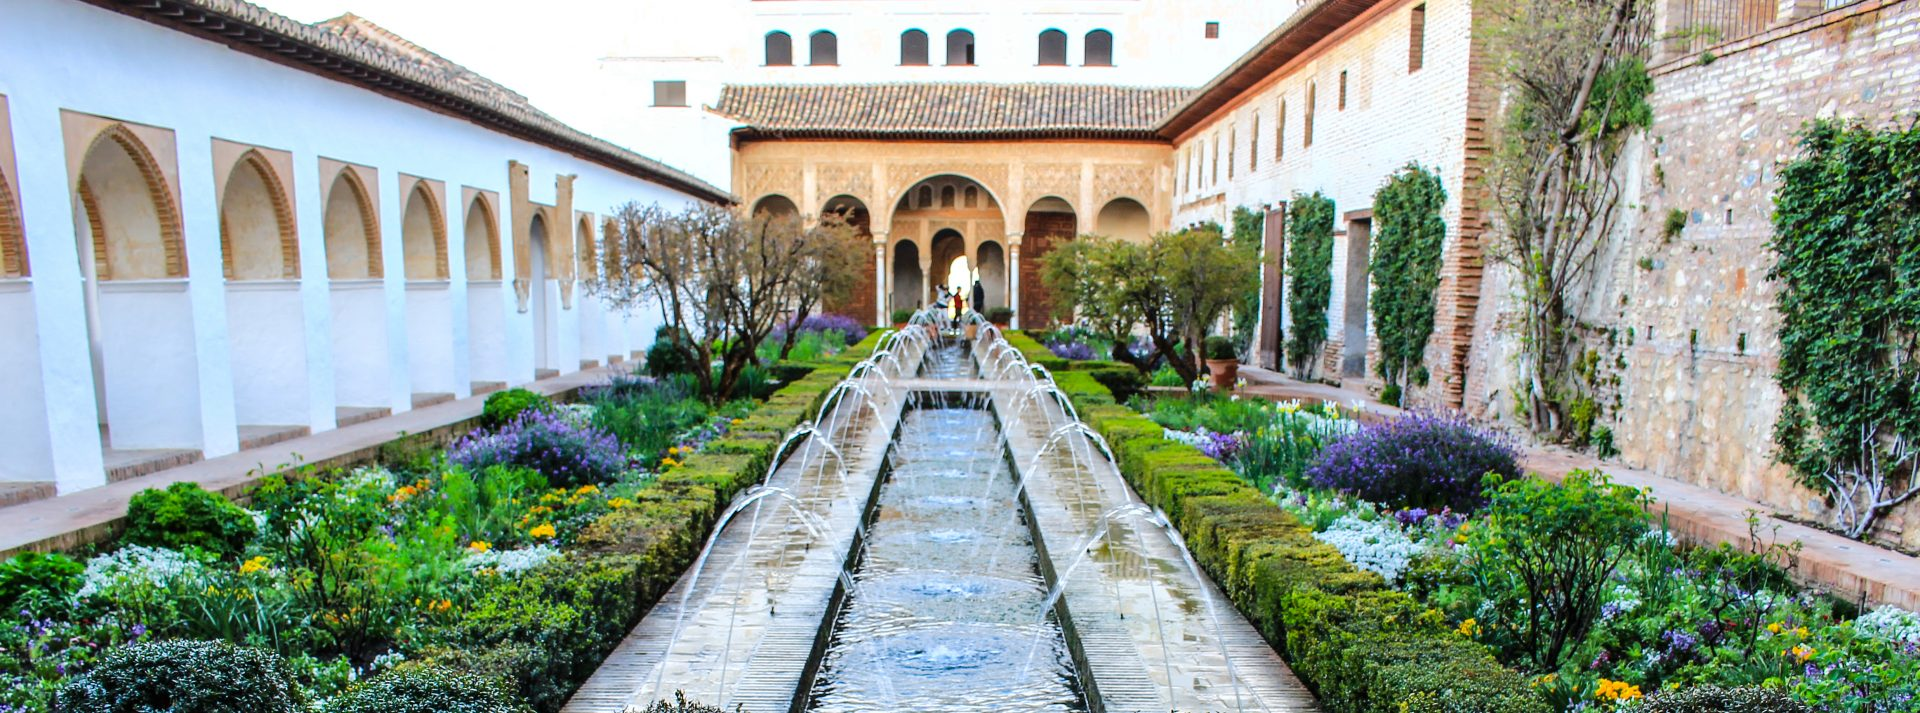 Securing Tickets to Alhambra – Best Way to Visit Alhambra, Granada, Spain